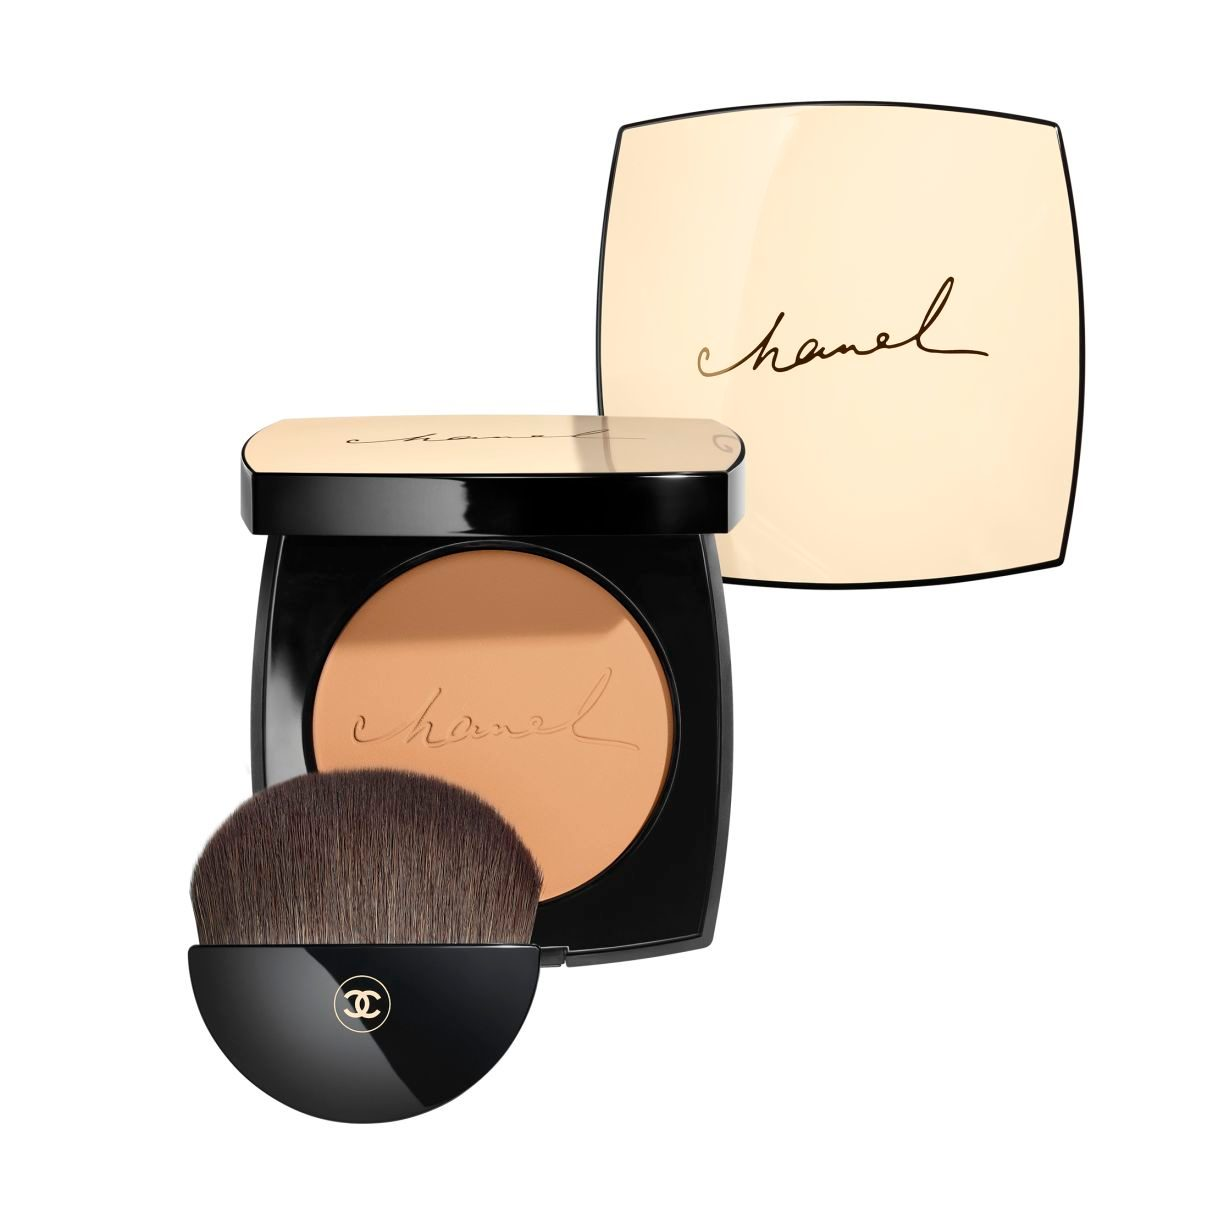 LES BEIGES HEALTHY GLOW SHEER POWDER - N°40